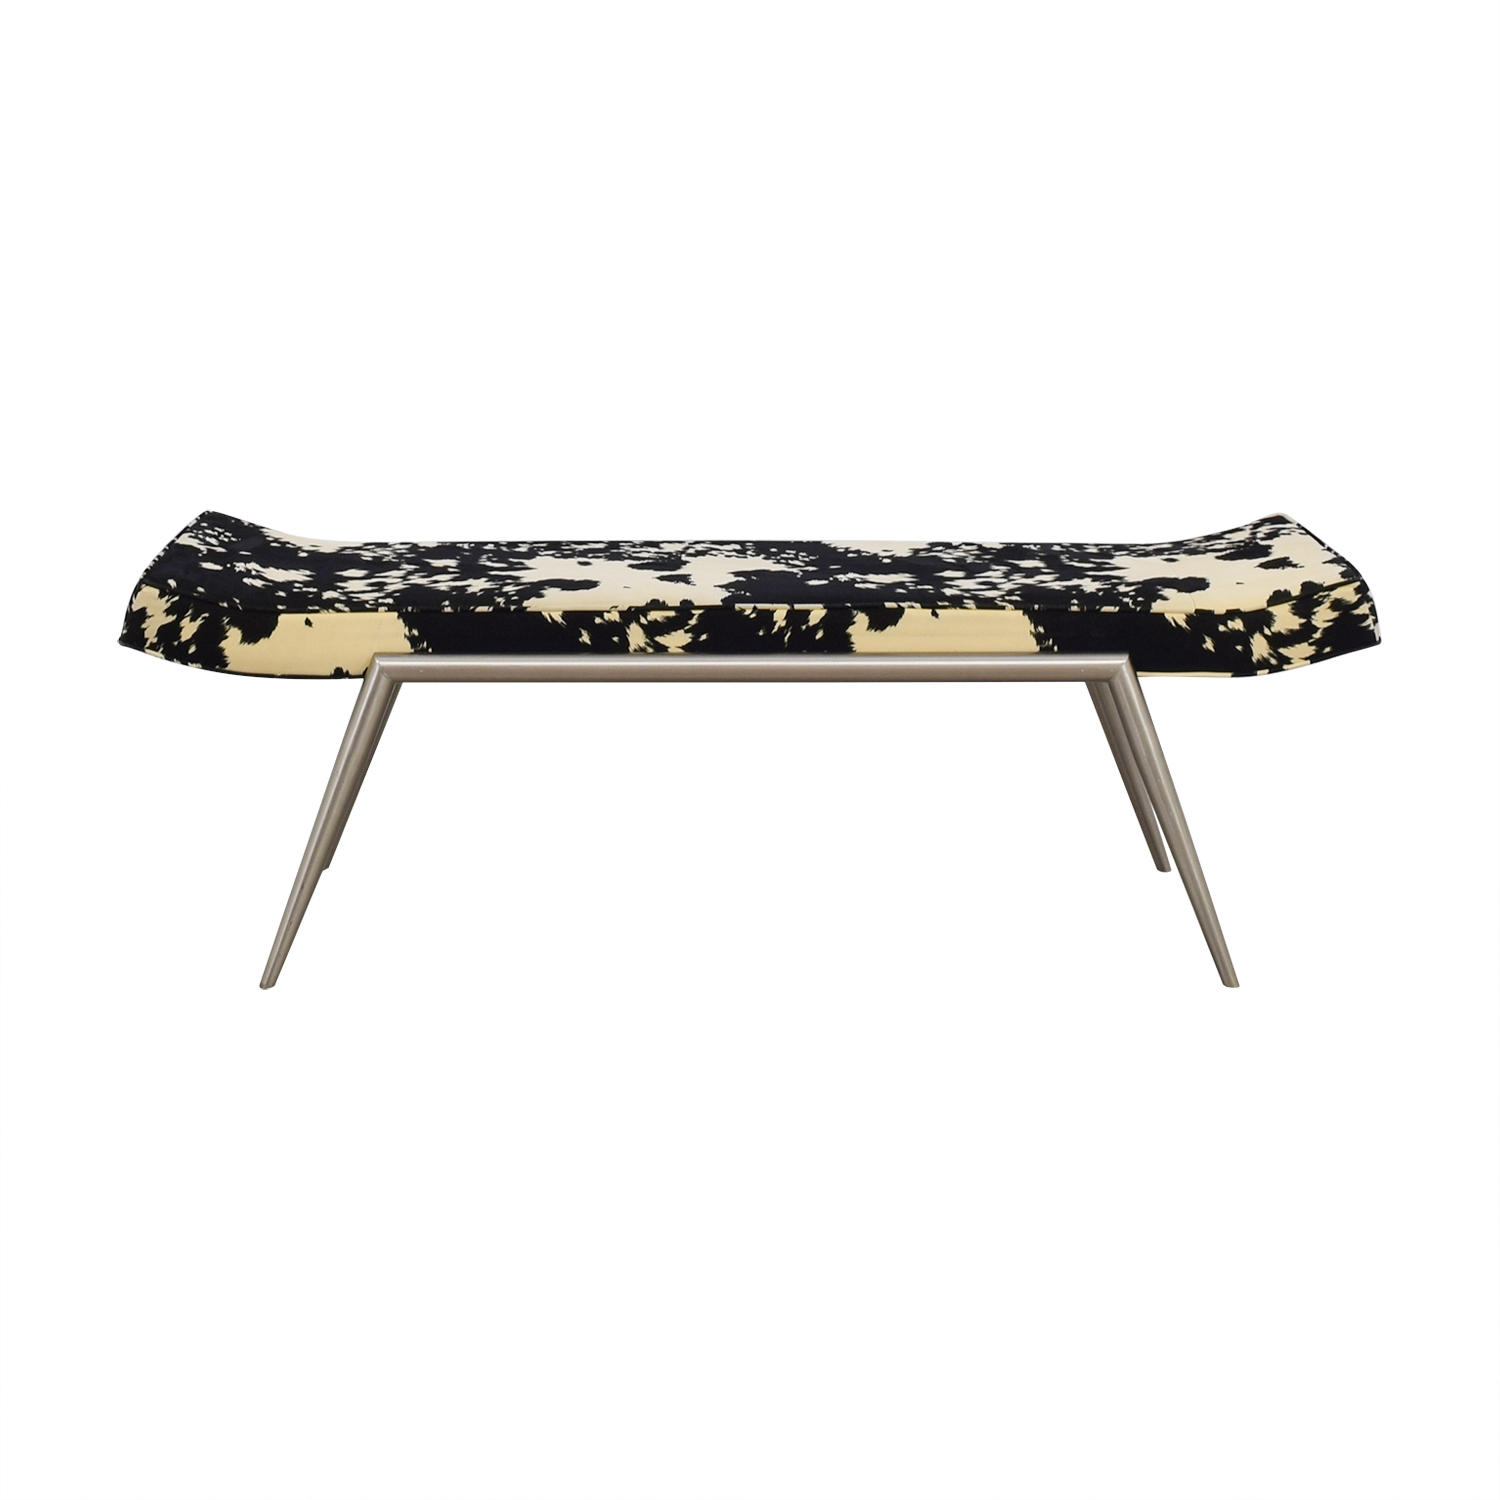 Black and White Upholstered Bench dimensions